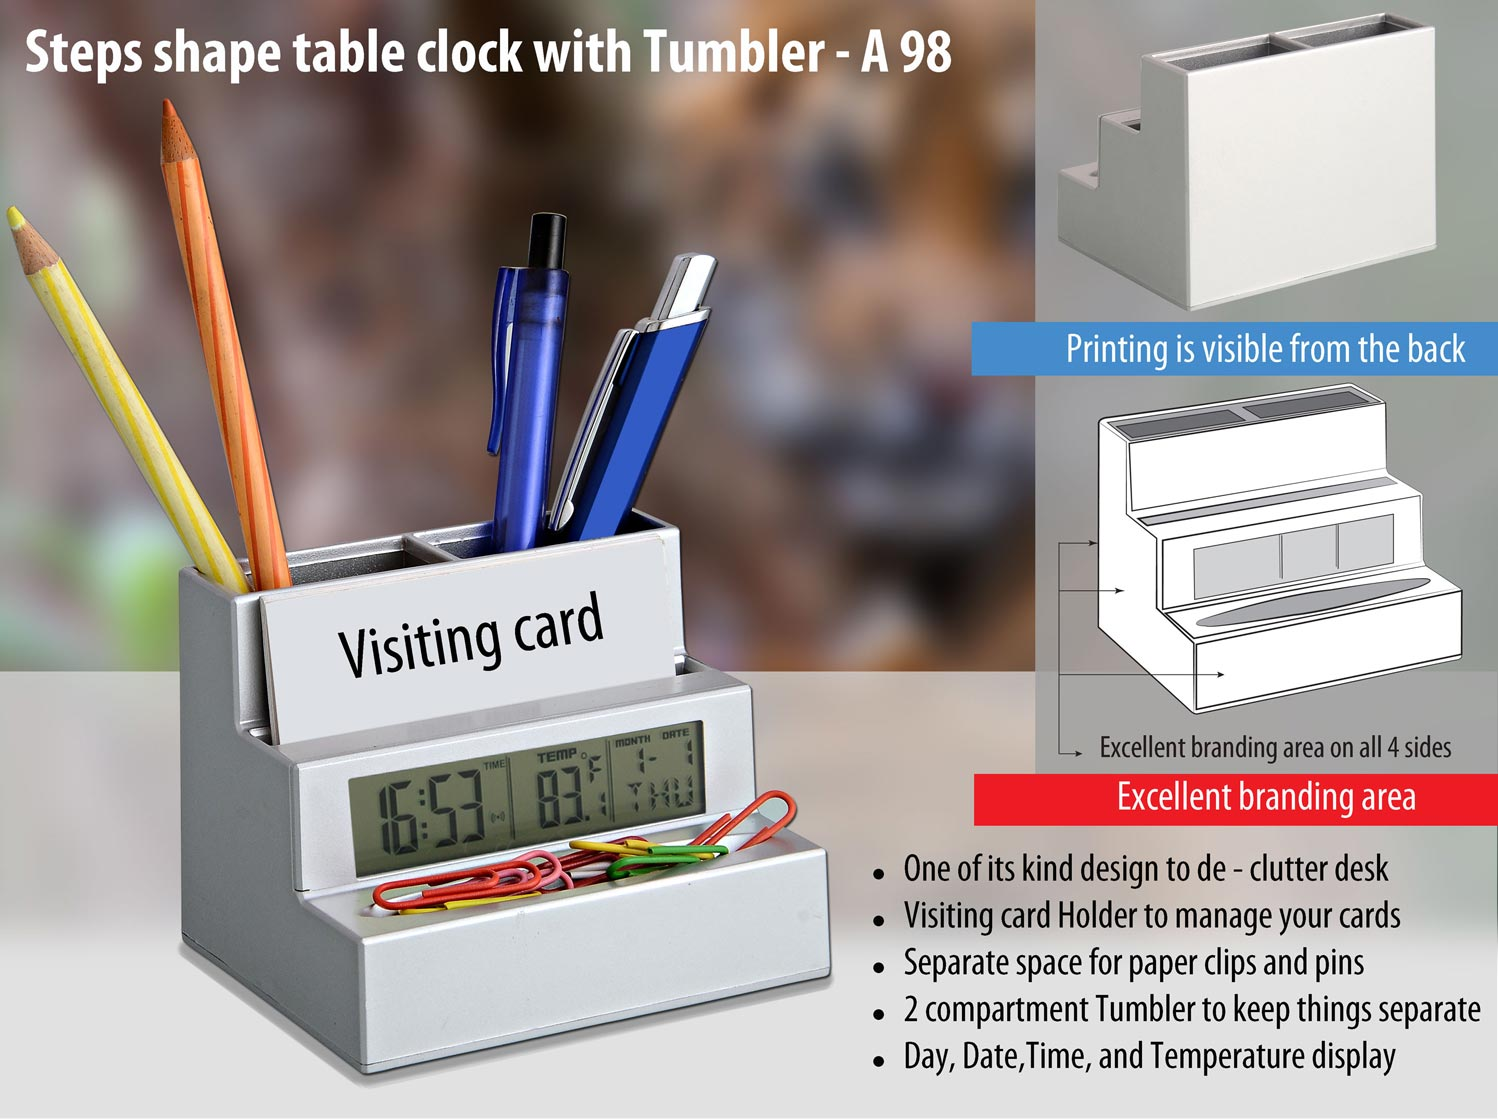 A98 - Steps shape table clock (with tumbler and visiting card holder)